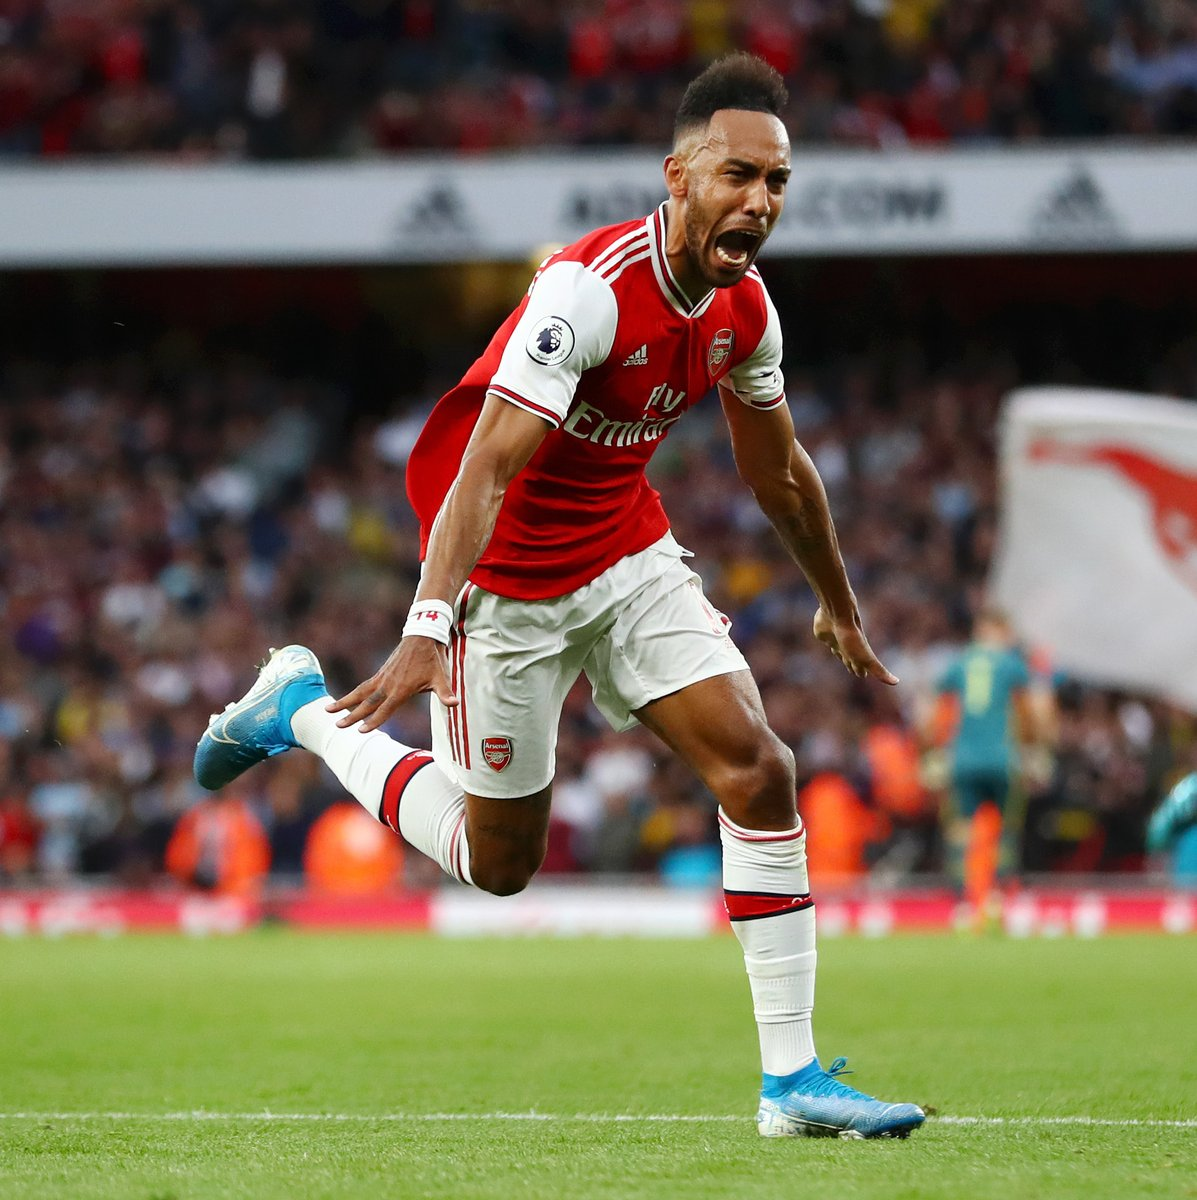 Today's #PlayerInFocus is Pierre-Emerick Aubameyang 🙌  ✅ Top scorer in Germany ✅ Top scorer in England   🇬🇦 Gabon's all-time top scorer  ⚽️ 61 goals in 97 games for Arsenal  Big player. Big personality.  🙏 @Aubameyang7 https://t.co/hFXFpiTjYM